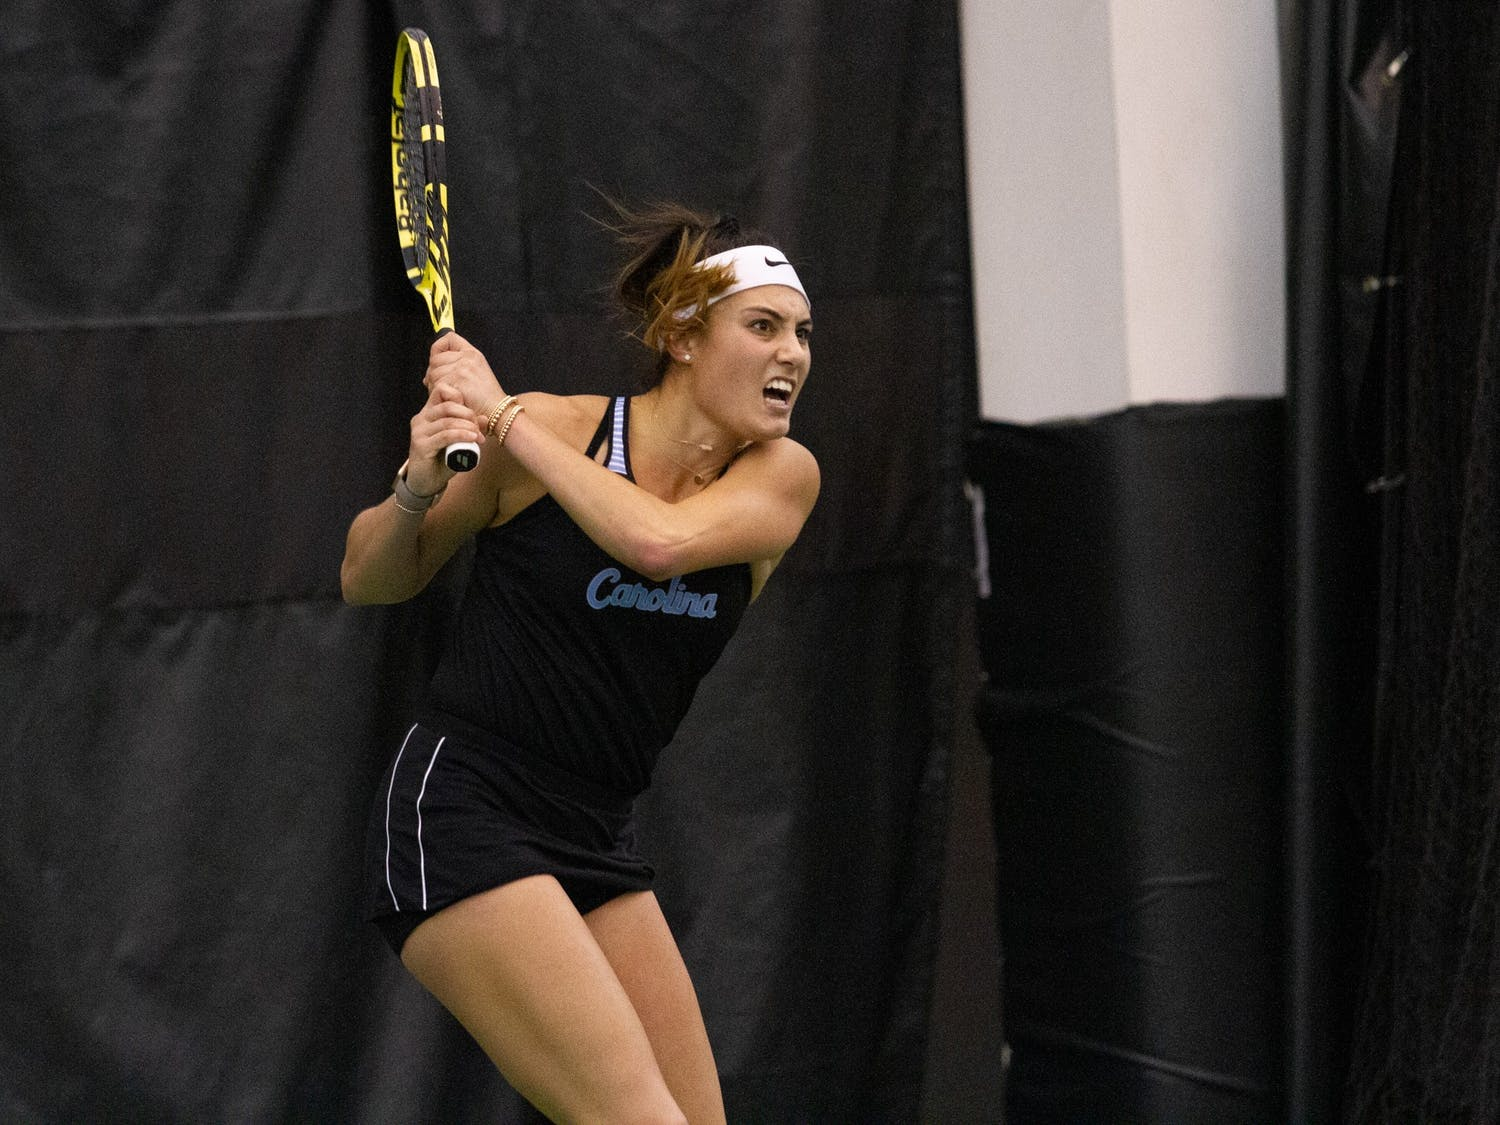 UNC senior Alexa Graham after returning a volley during her singles match against Old Dominion University during the ITA Championship hosted at the Cone-Kenfield Tennis Center in Chapel Hill, NC, on Saturday, January 25th. Following her wins over the course of the championship, Graham moves into fifth place in the programs overall wins list with 121 career wins. The Tar Heels went on to win the championship  4-1 against Old Dominion University.